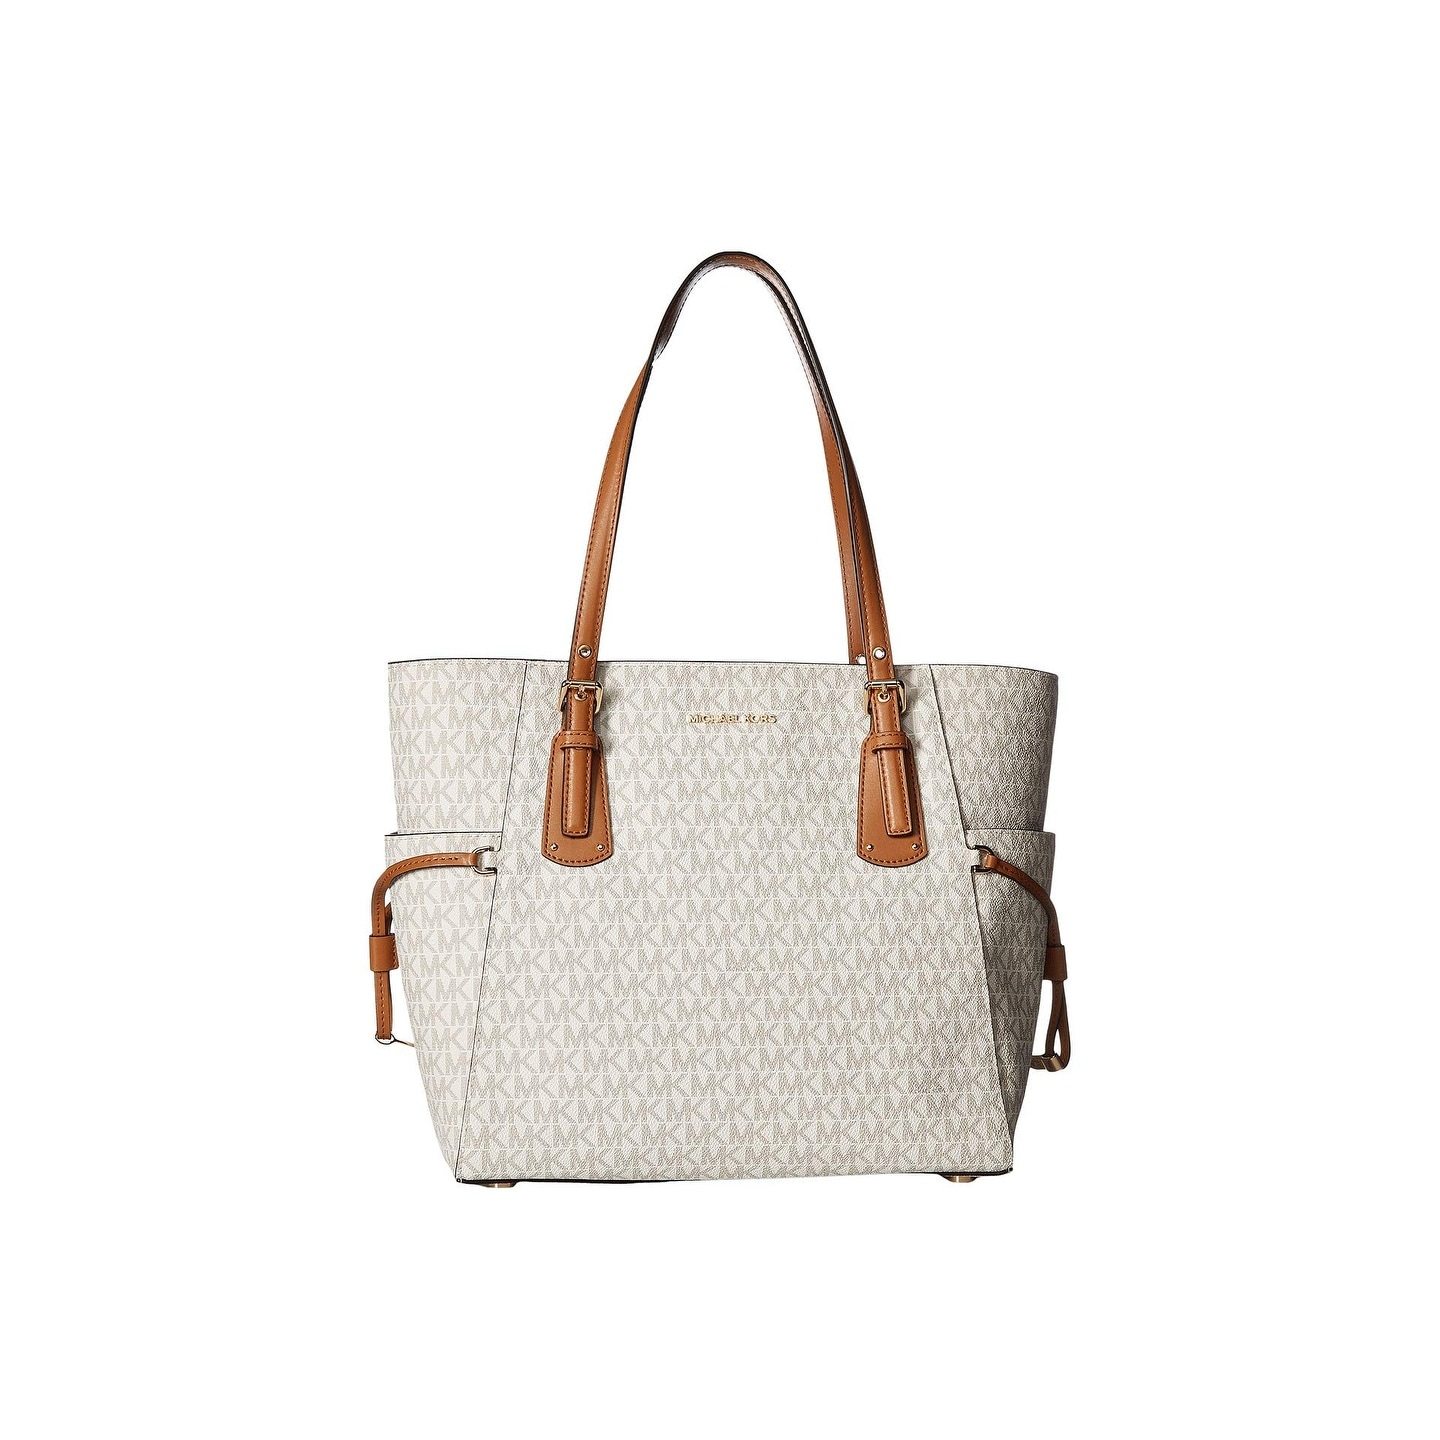 6a870f4da828 Buy Michael Kors Tote Bags Online at Overstock